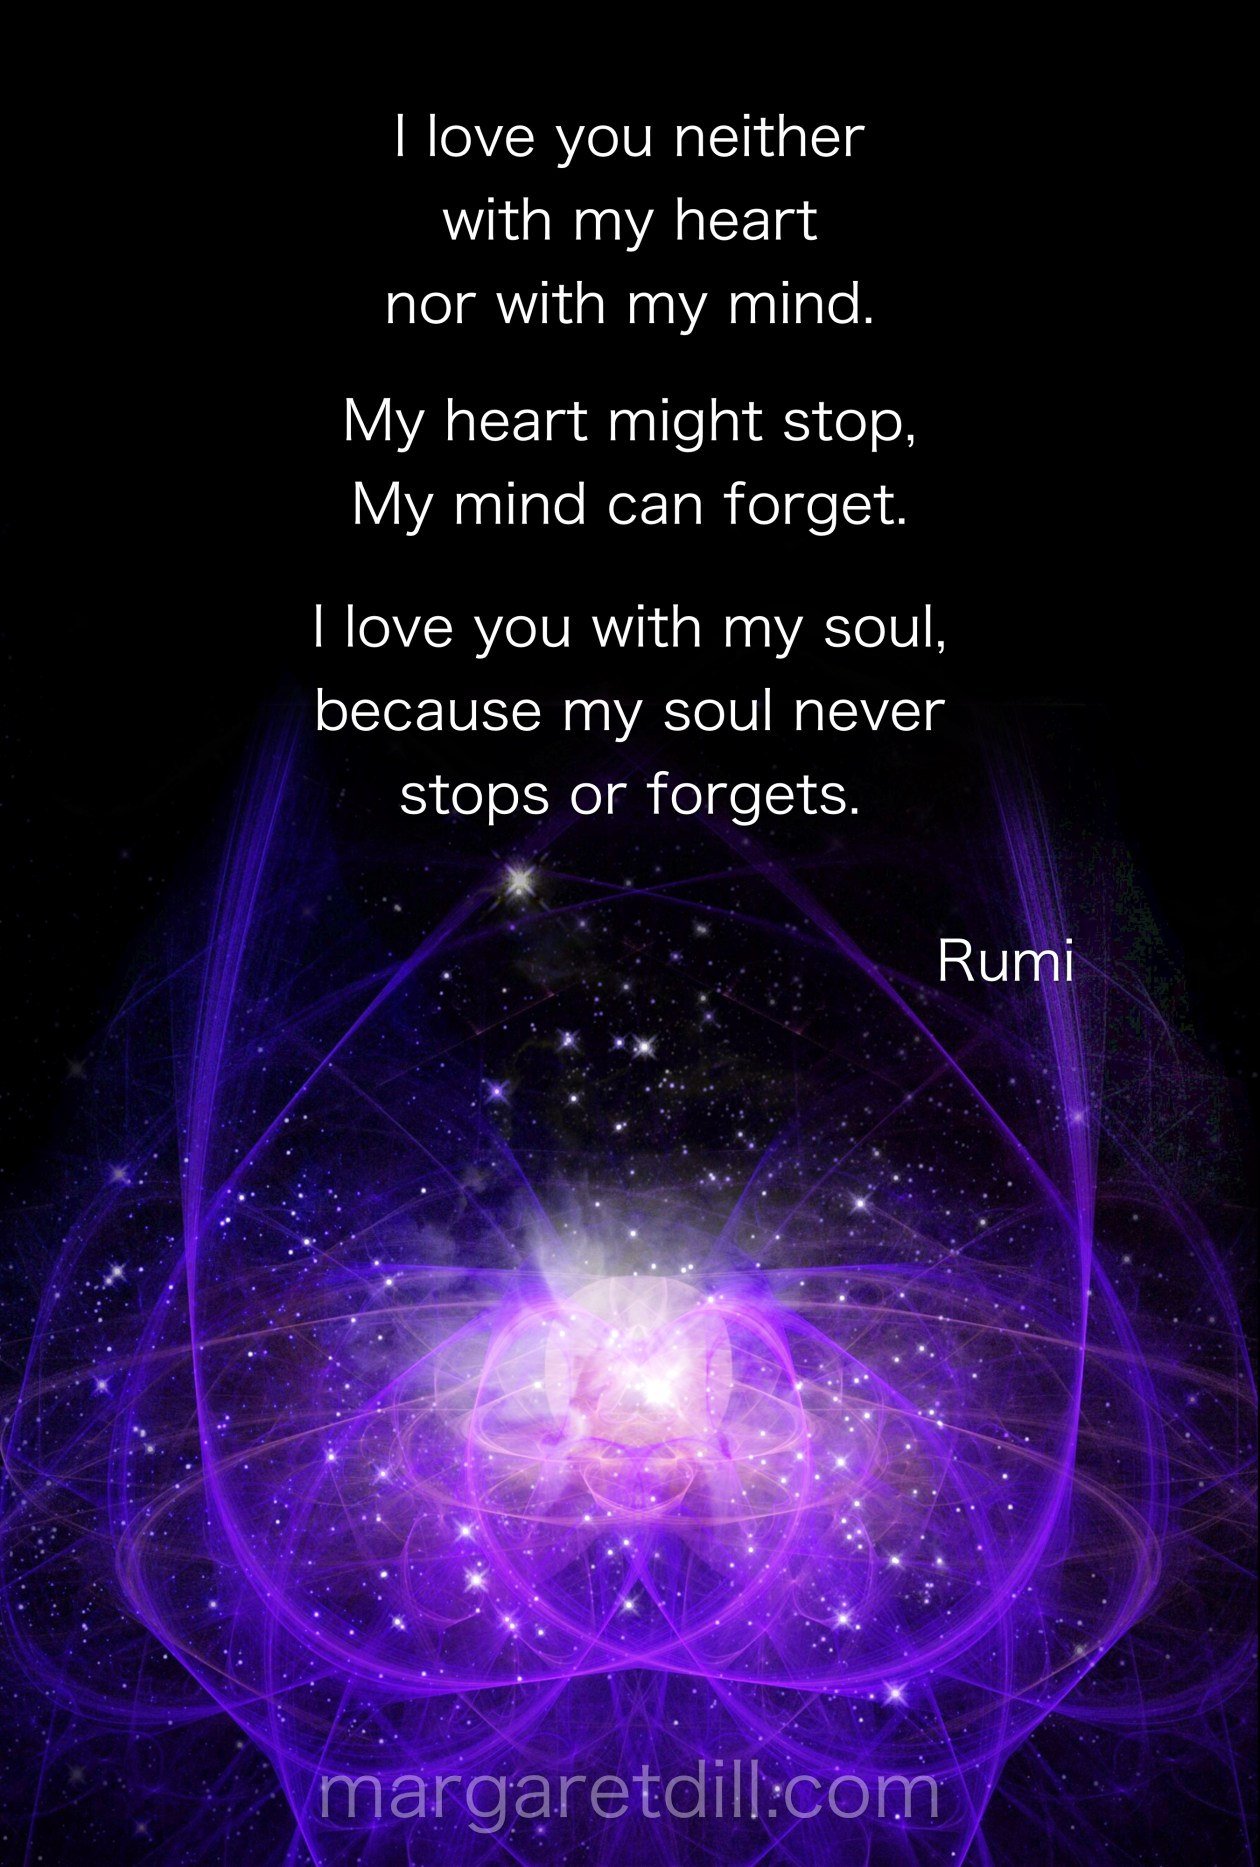 I love you Rumi Quote #wordsofwisdom #spiritualquotes #positivequotes #Rumi #margaretdill